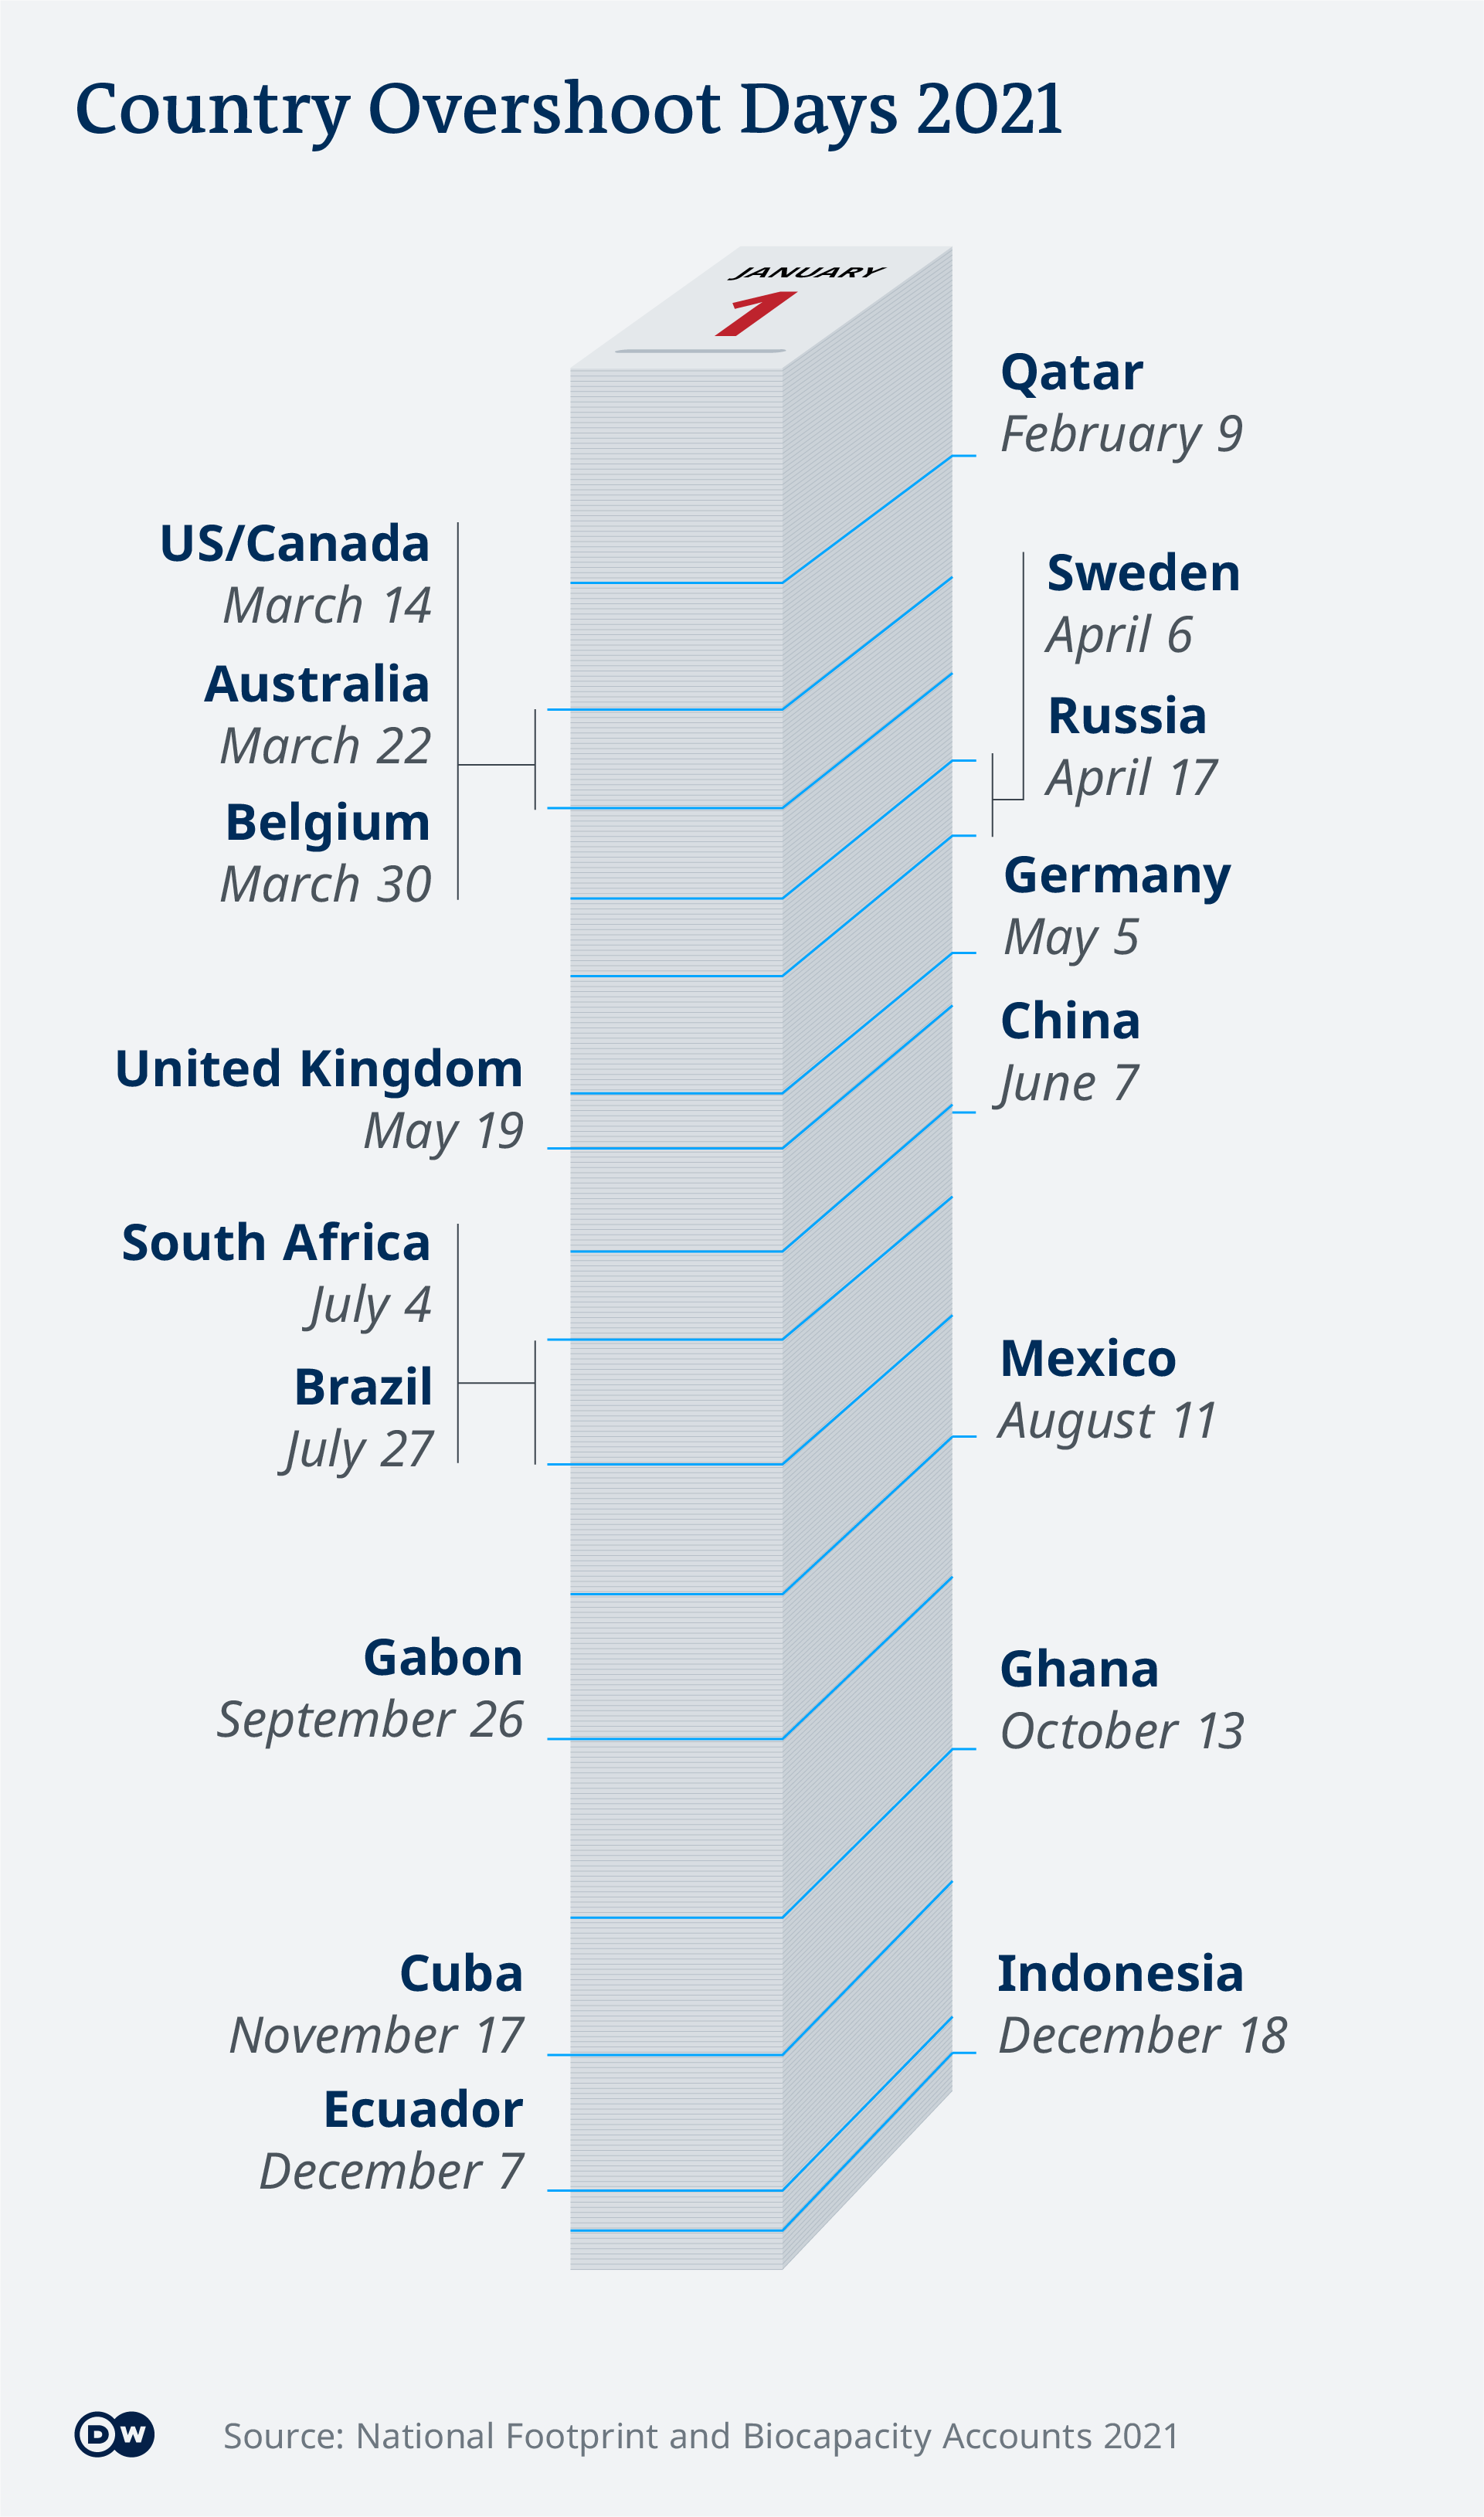 Infographic showing when certain countries hit their Overshoot Day